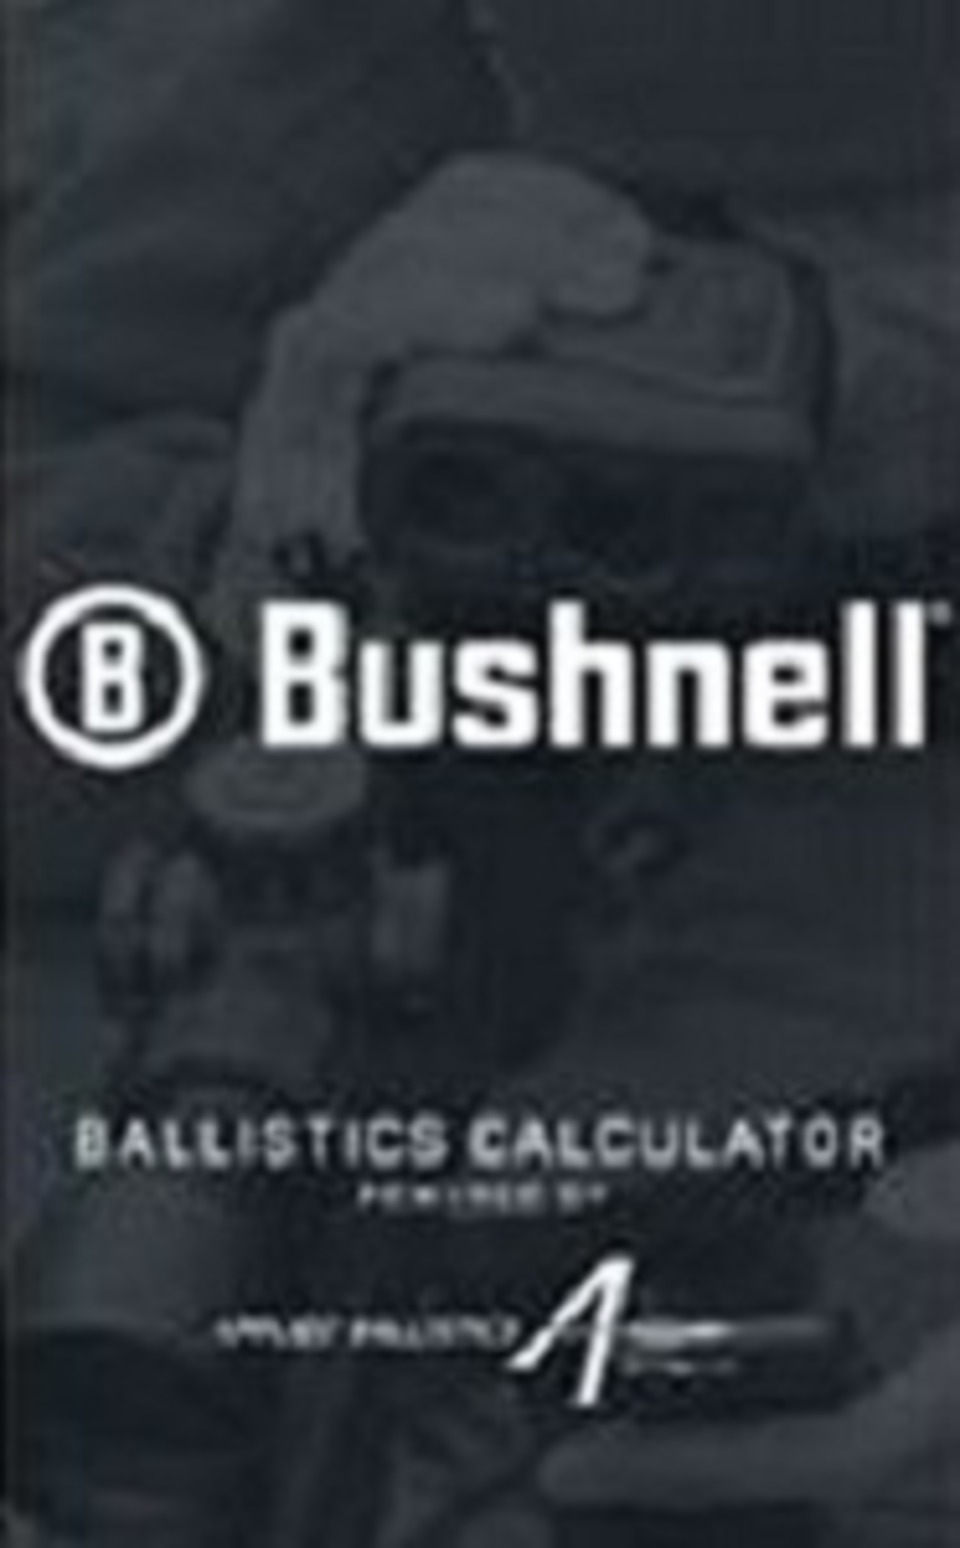 Bushnell Outdoor Products Calculate firing solutions for